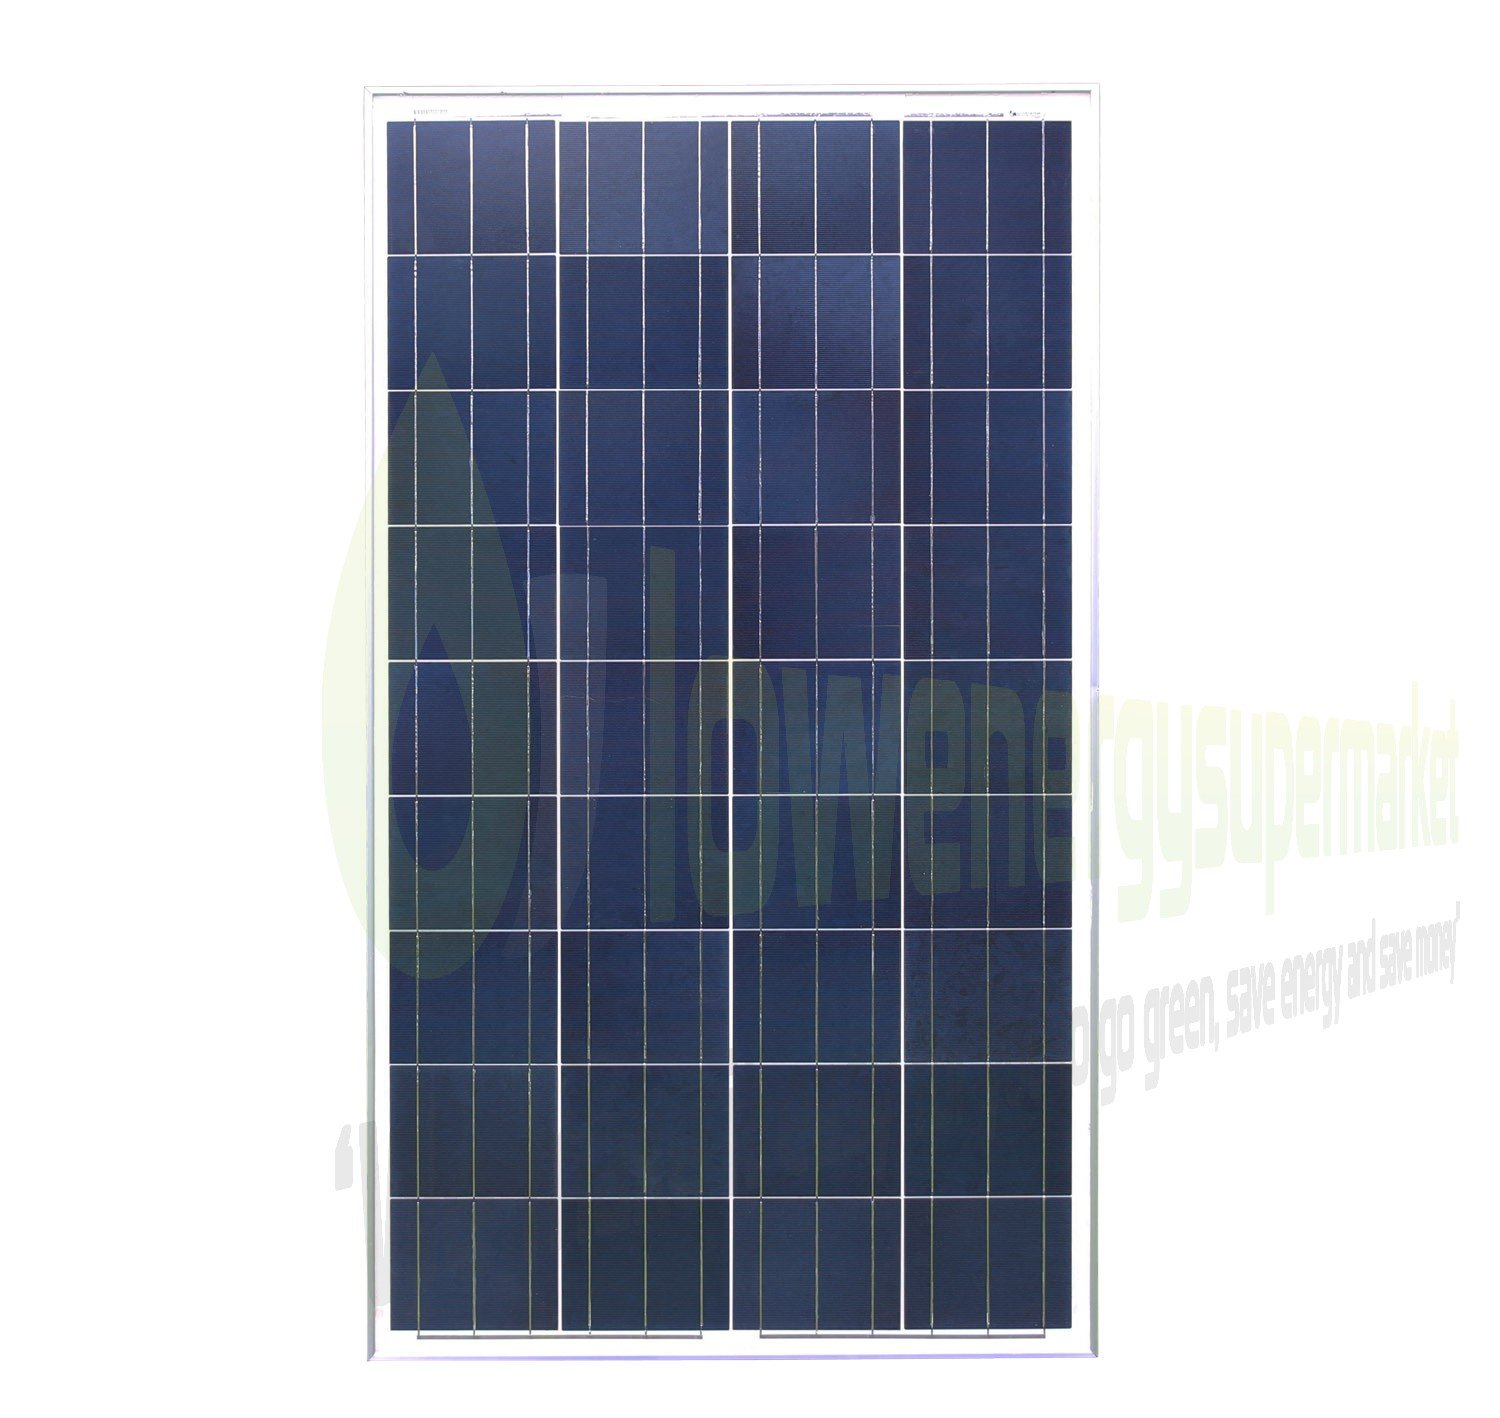 Lowenergie 150W Poly-Crystalline Solar Panel Premium Quality PV Photo-voltaic Panel. For Caravans, Motorhomes, Boats & Any Flat Surface